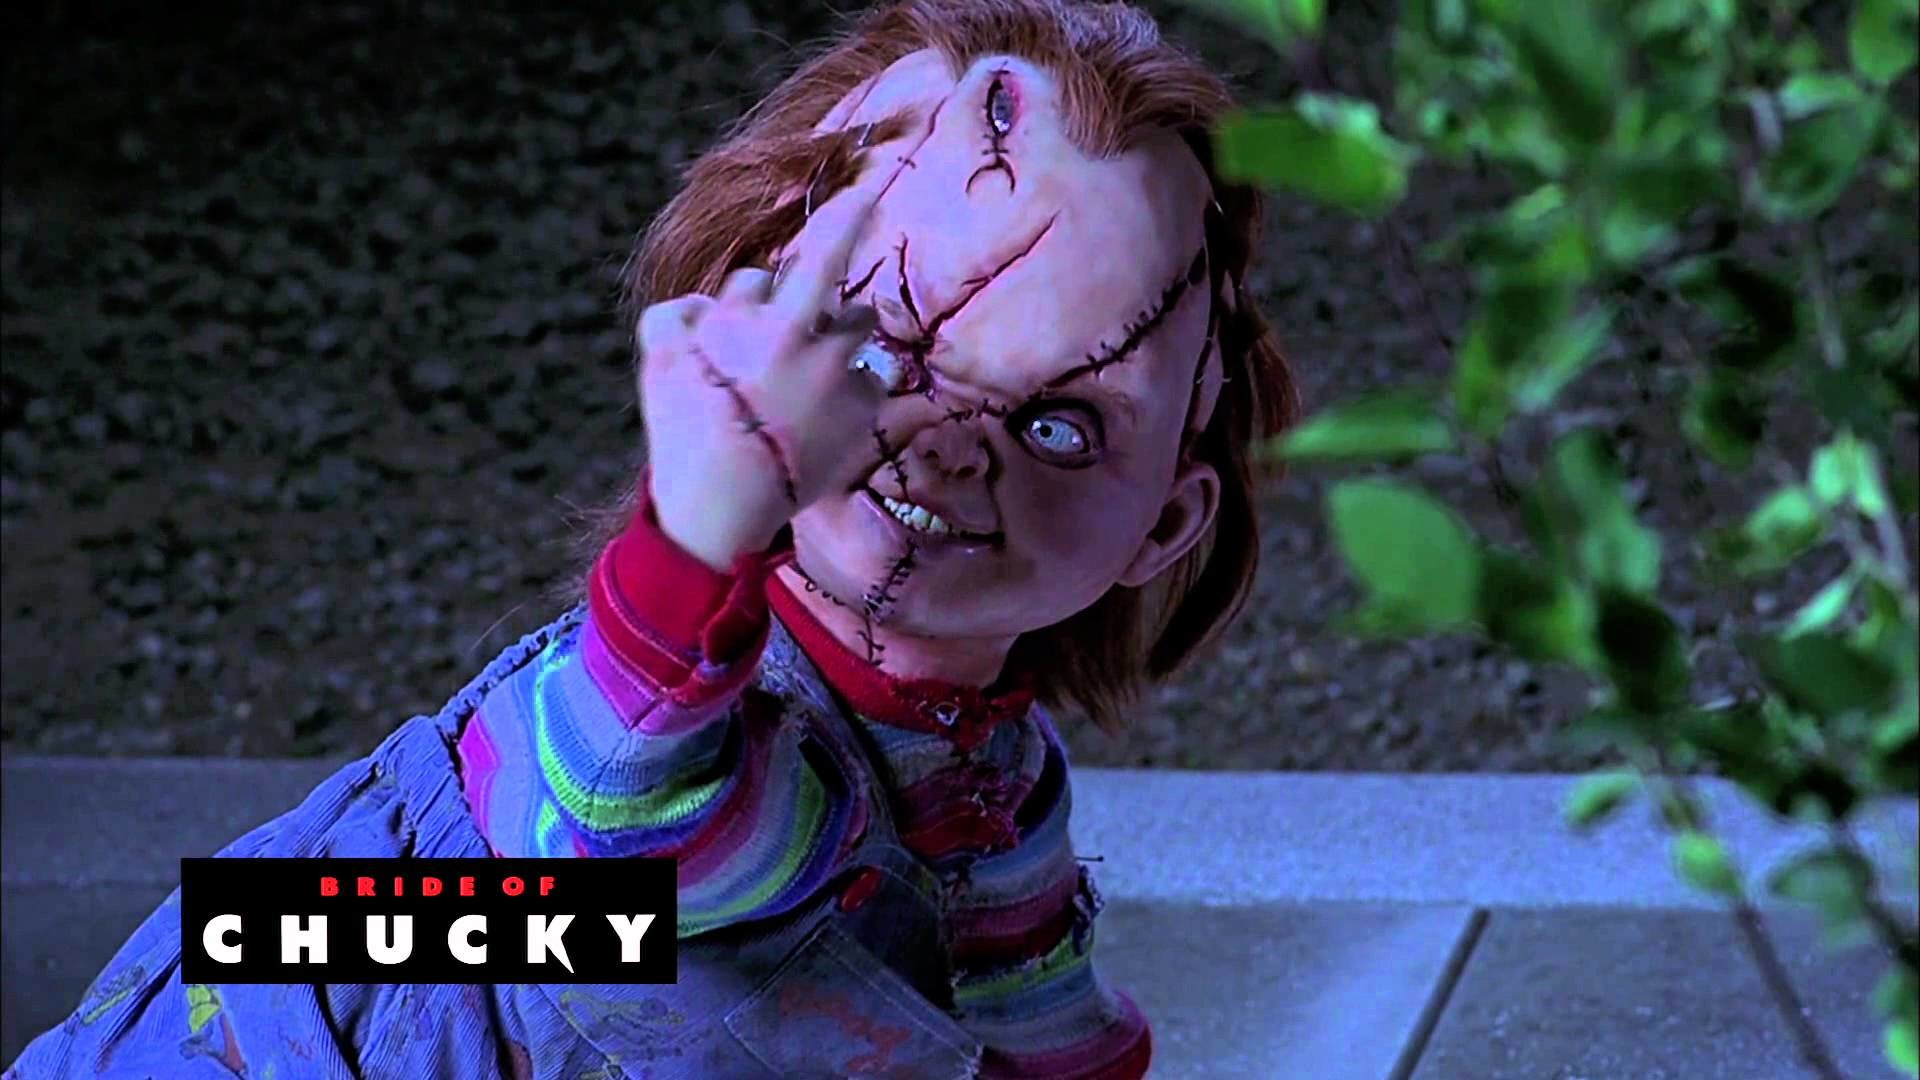 1920x1080 Get free high quality HD wallpapers chucky doll wallpaper hd